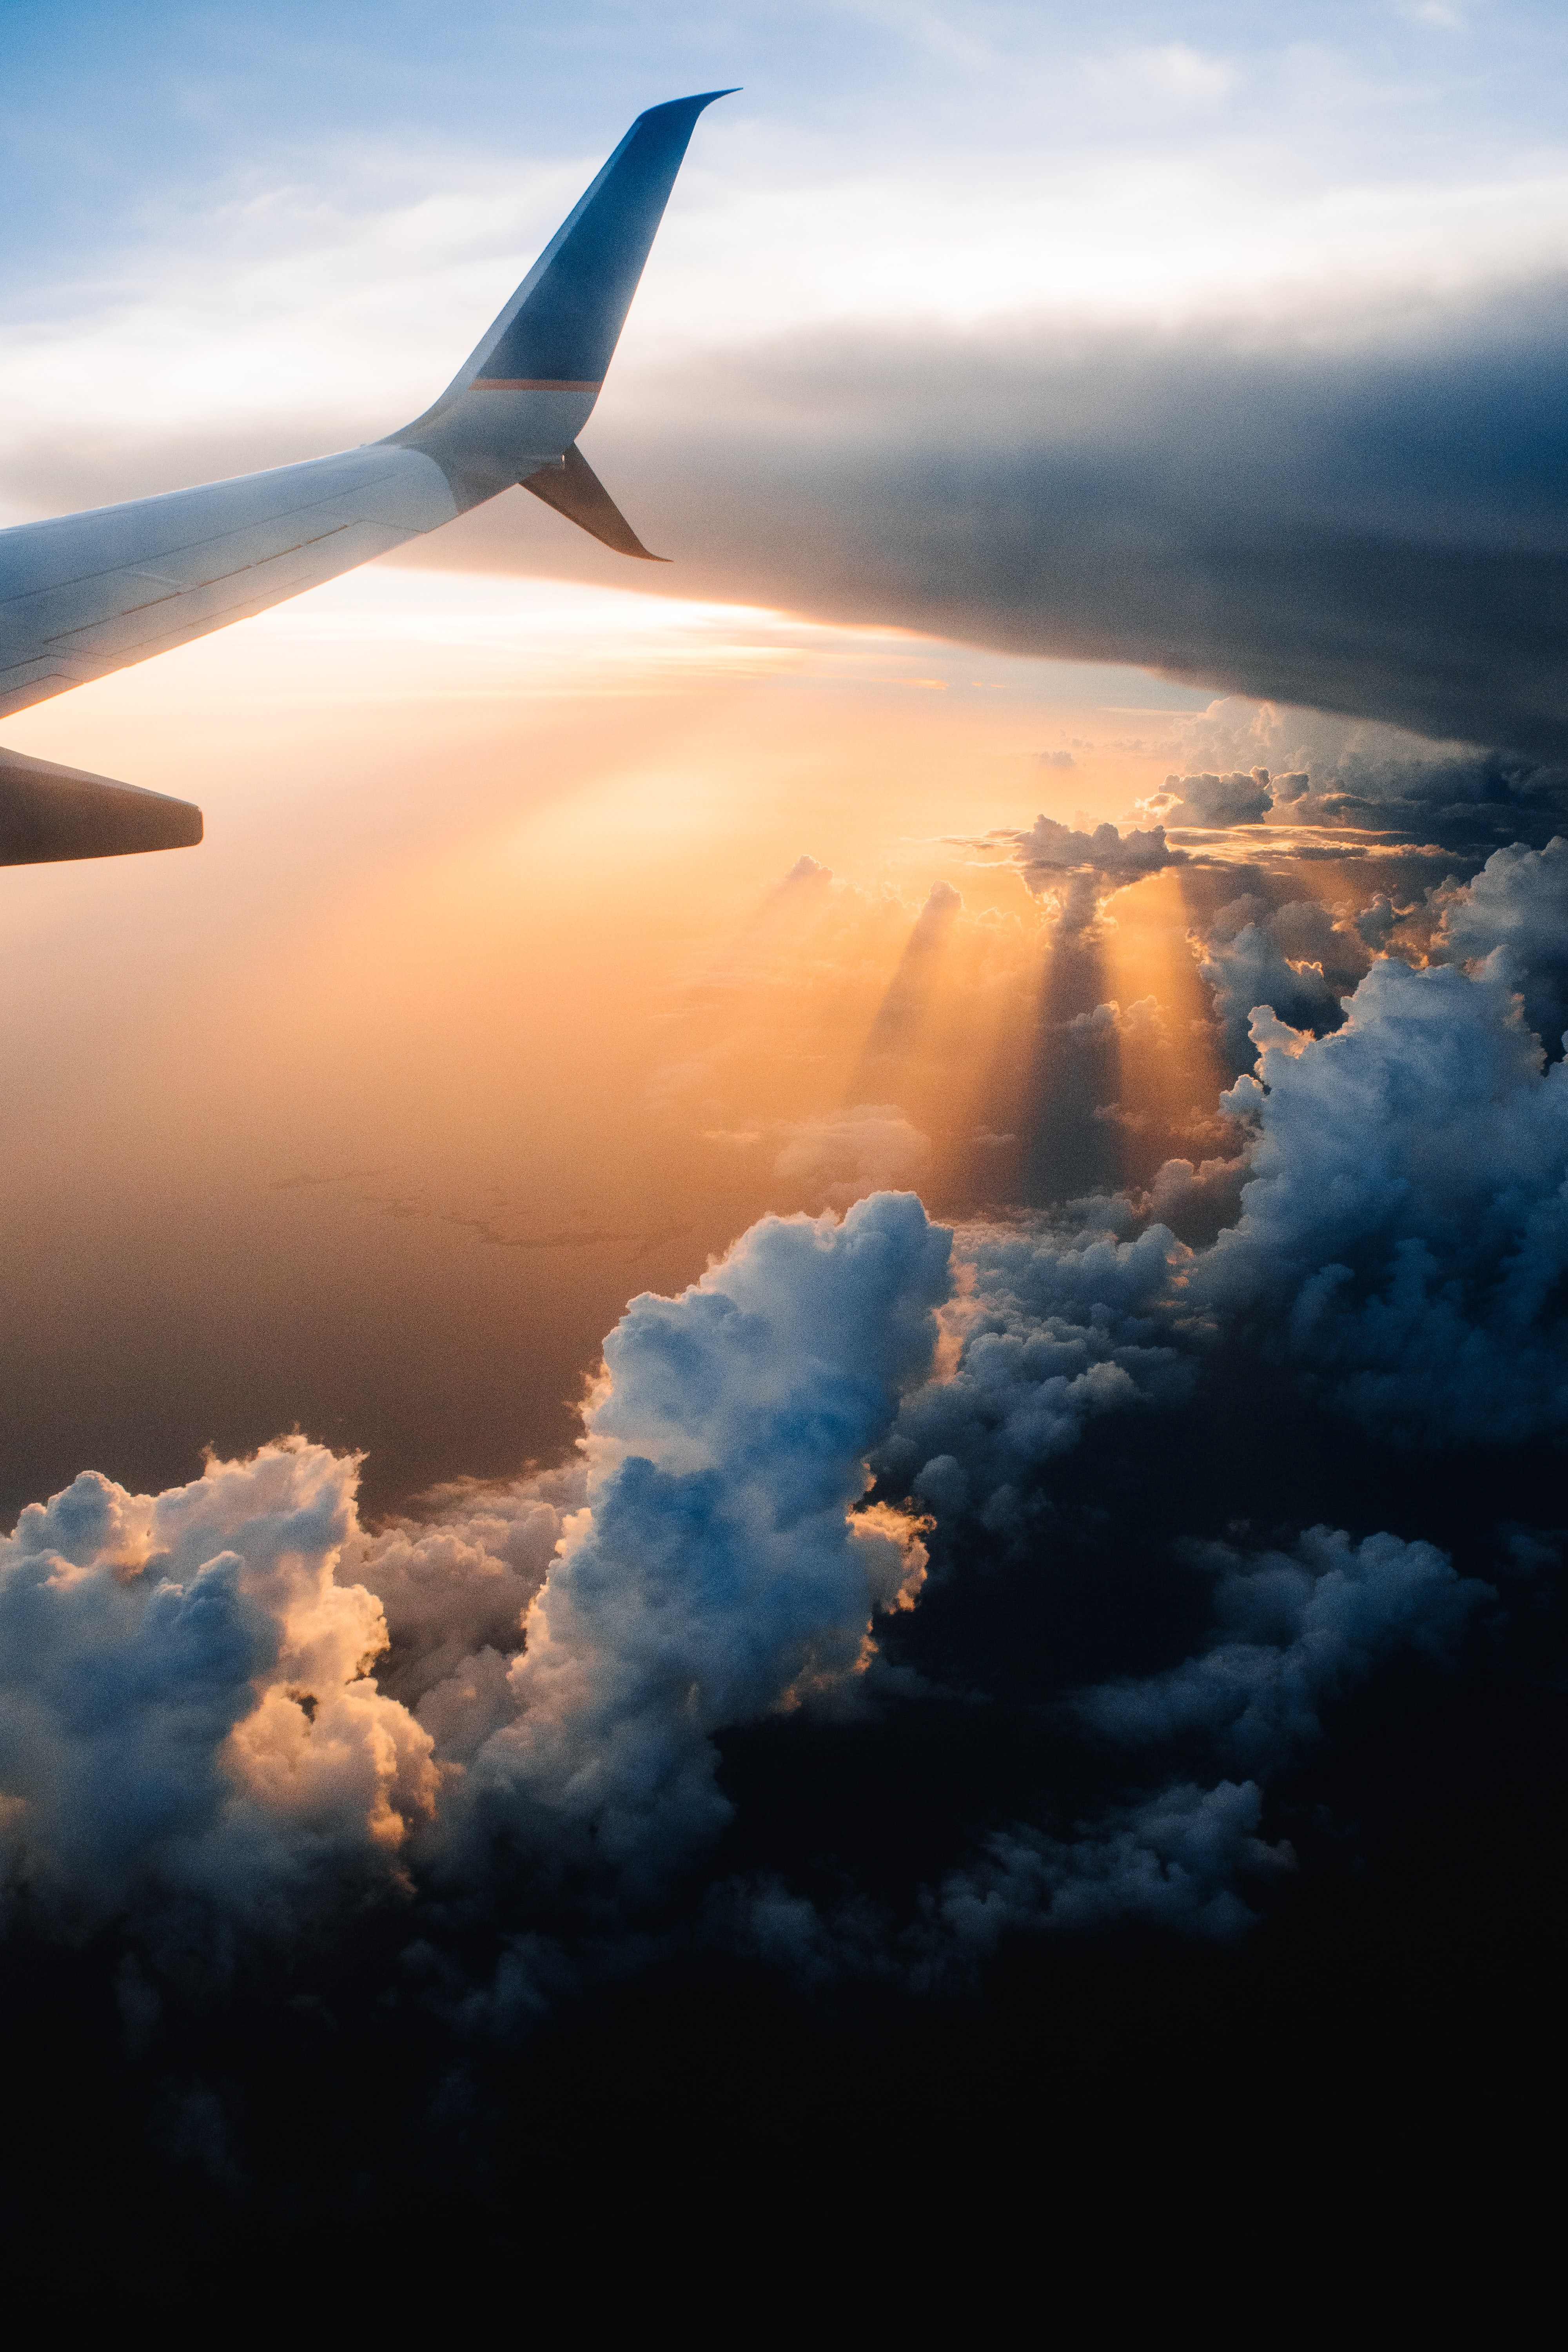 POV from a person in an airplane looking out of the airplane window. A plane wing soars above fluffy clouds in an orange sky.